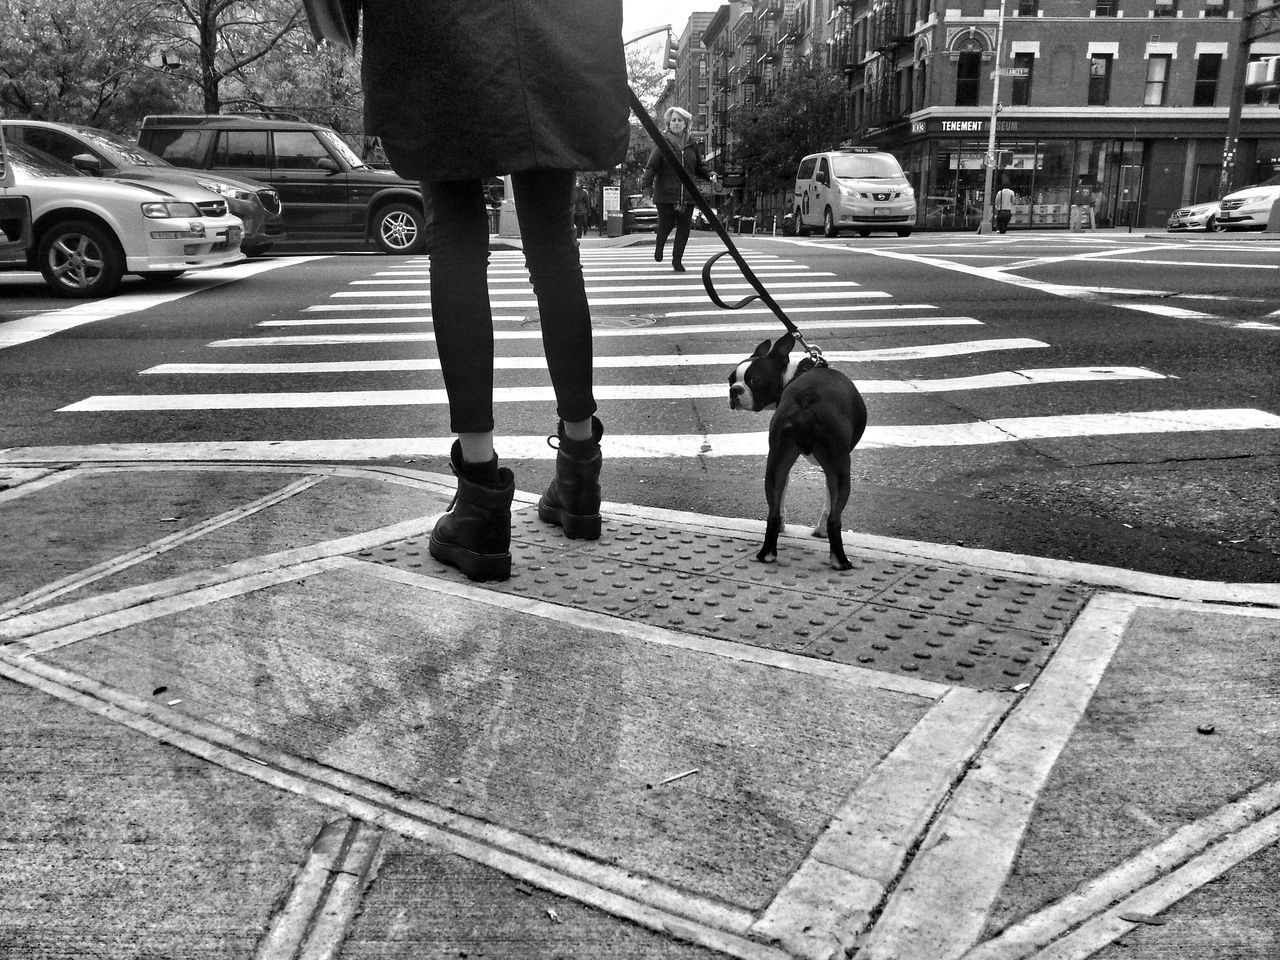 The girl with the dog. Soho NYC Streetphotography Monochrome Blackandwhite NYC Dogs Dog People Everyday Lives B&W Portrait EyeEm Best Shots Telling Stories Differently Up Close Street Photography My Favorite Photo Monochrome Photography Snap a Stranger Enjoy The New Normal Embrace Urban Life Exploring Style The Street Photographer - 2017 EyeEm Awards The Portraitist - 2017 EyeEm Awards